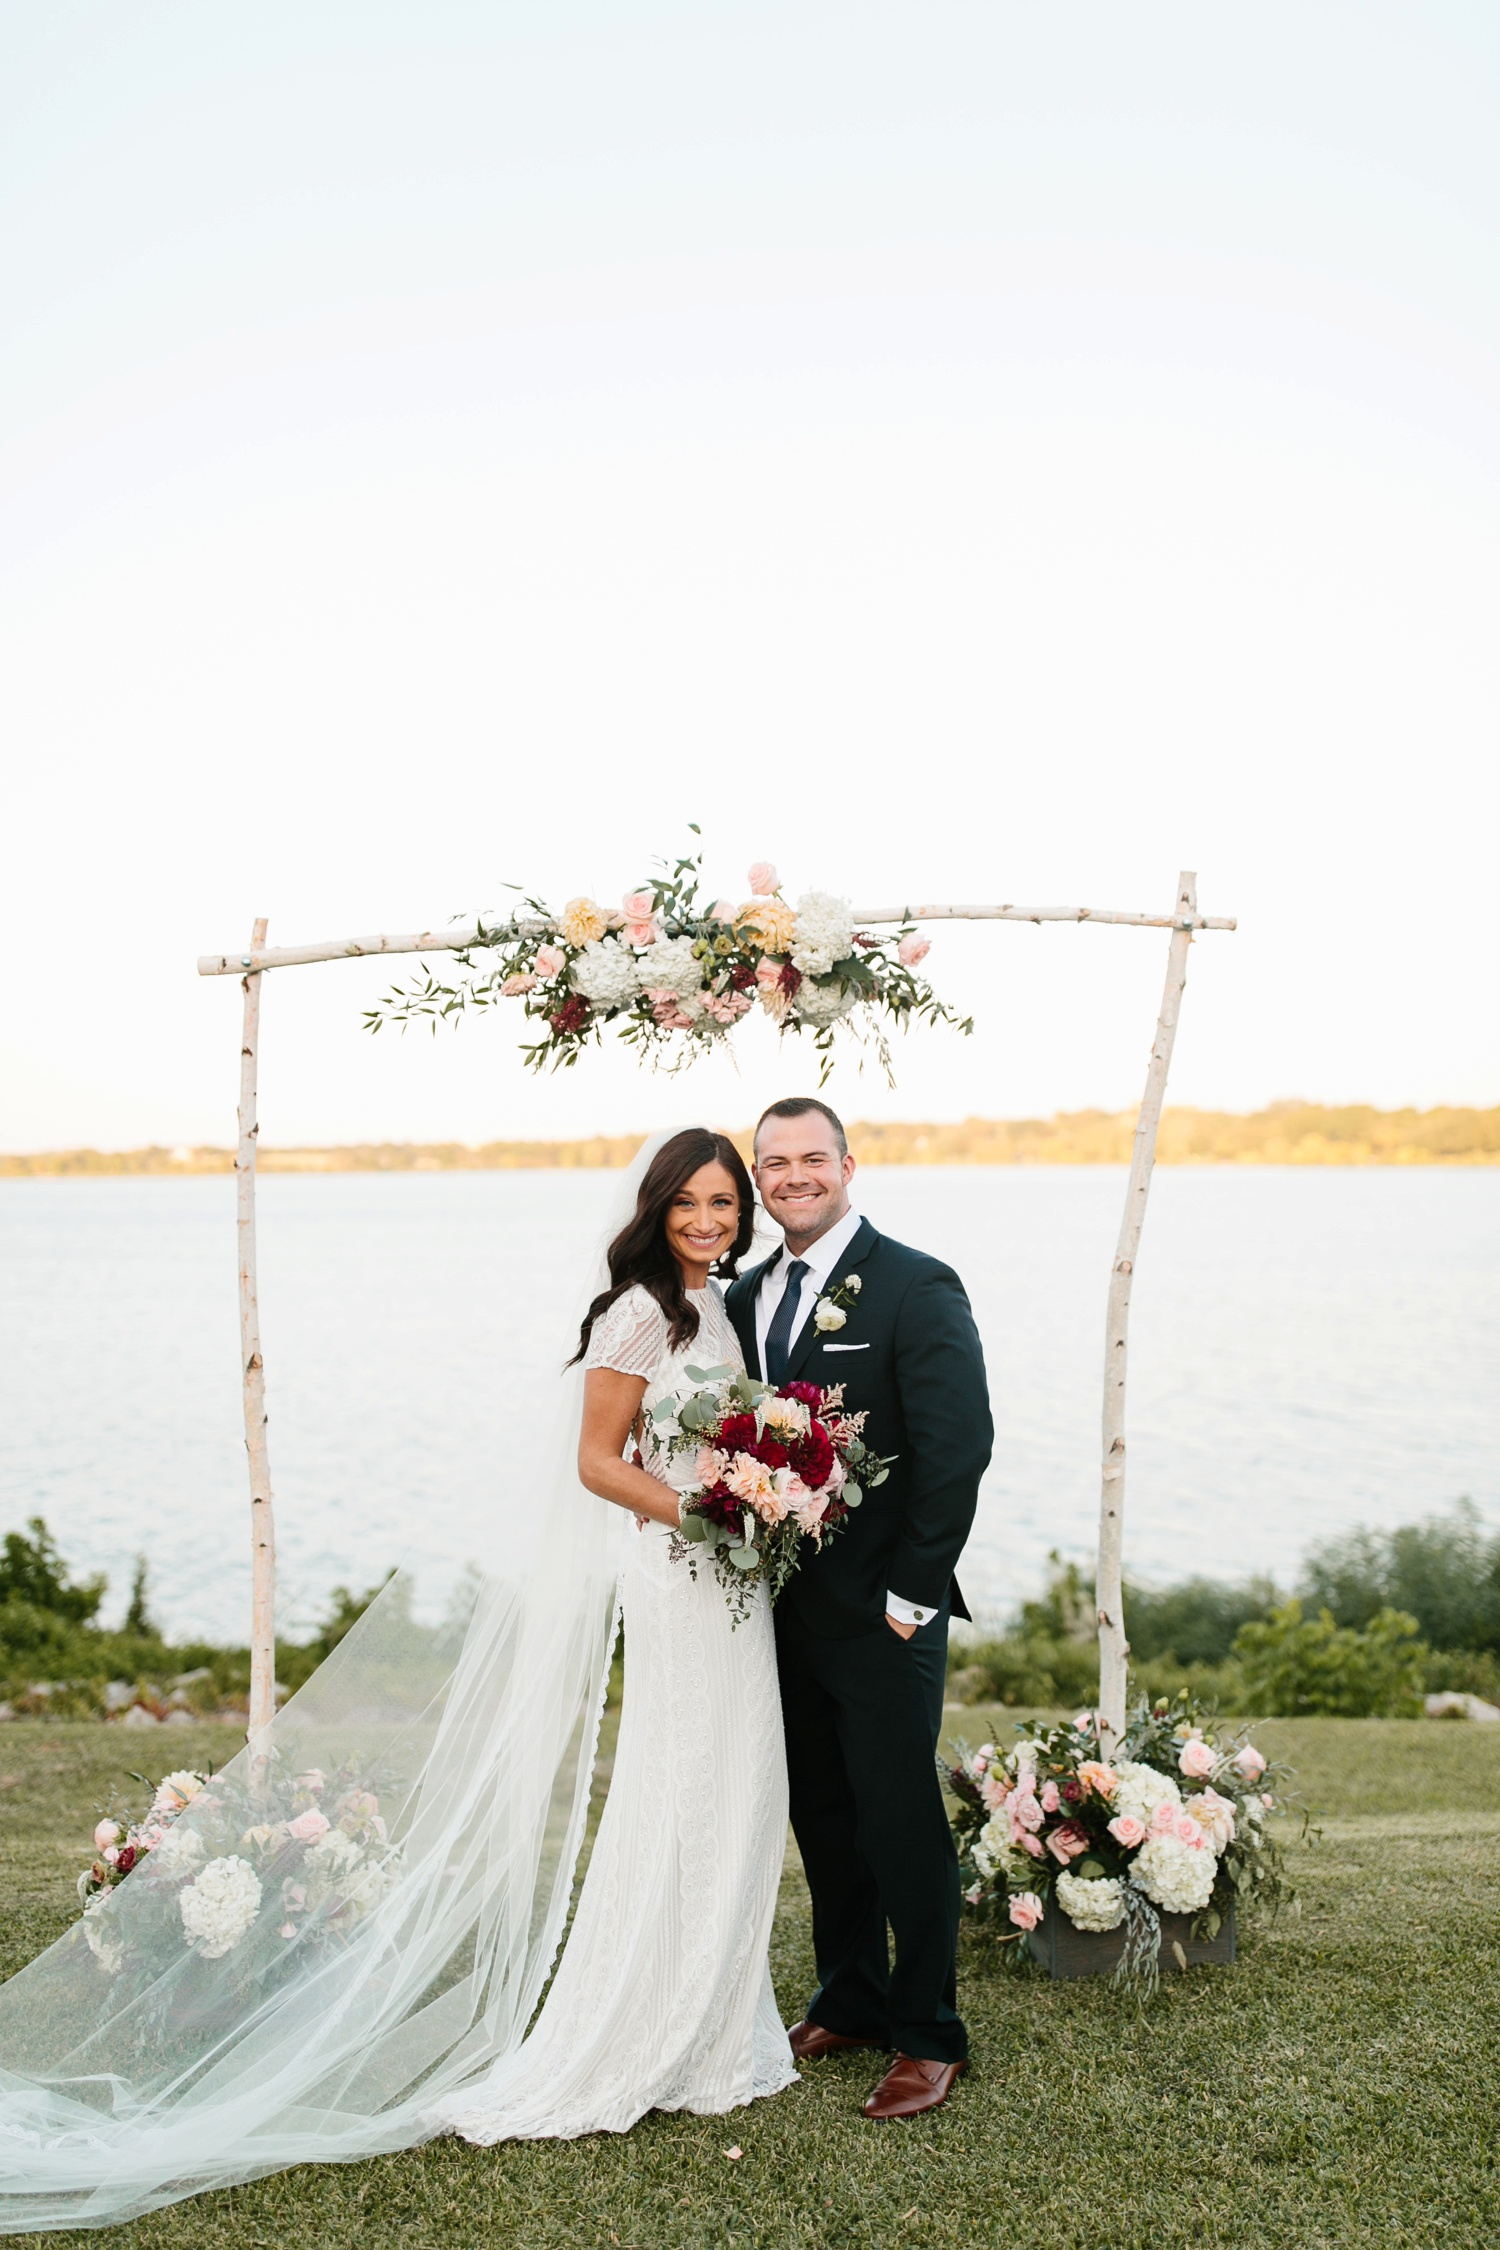 Kadee + Tyler | a raw, emotional wedding at the Filter Building on White Rock Lake in Dallas, TX by North Texas Wedding Photographer, Rachel Meagan Photography 152